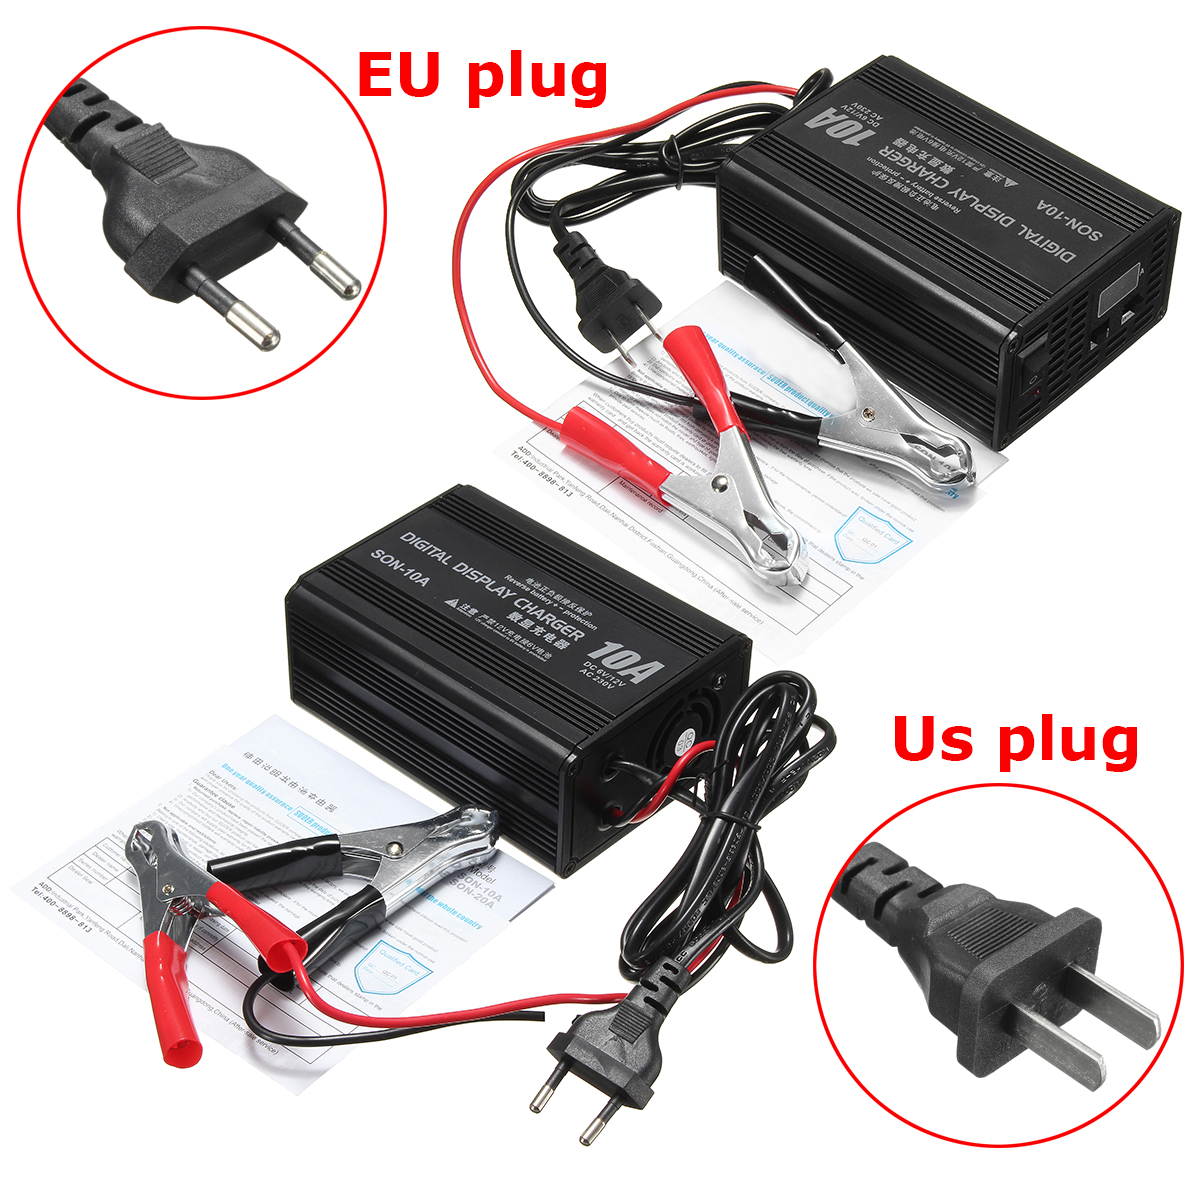 6V/12V 10A Smart Car Motorcycle Battery Charger Lead Acid Battery Charger 230V